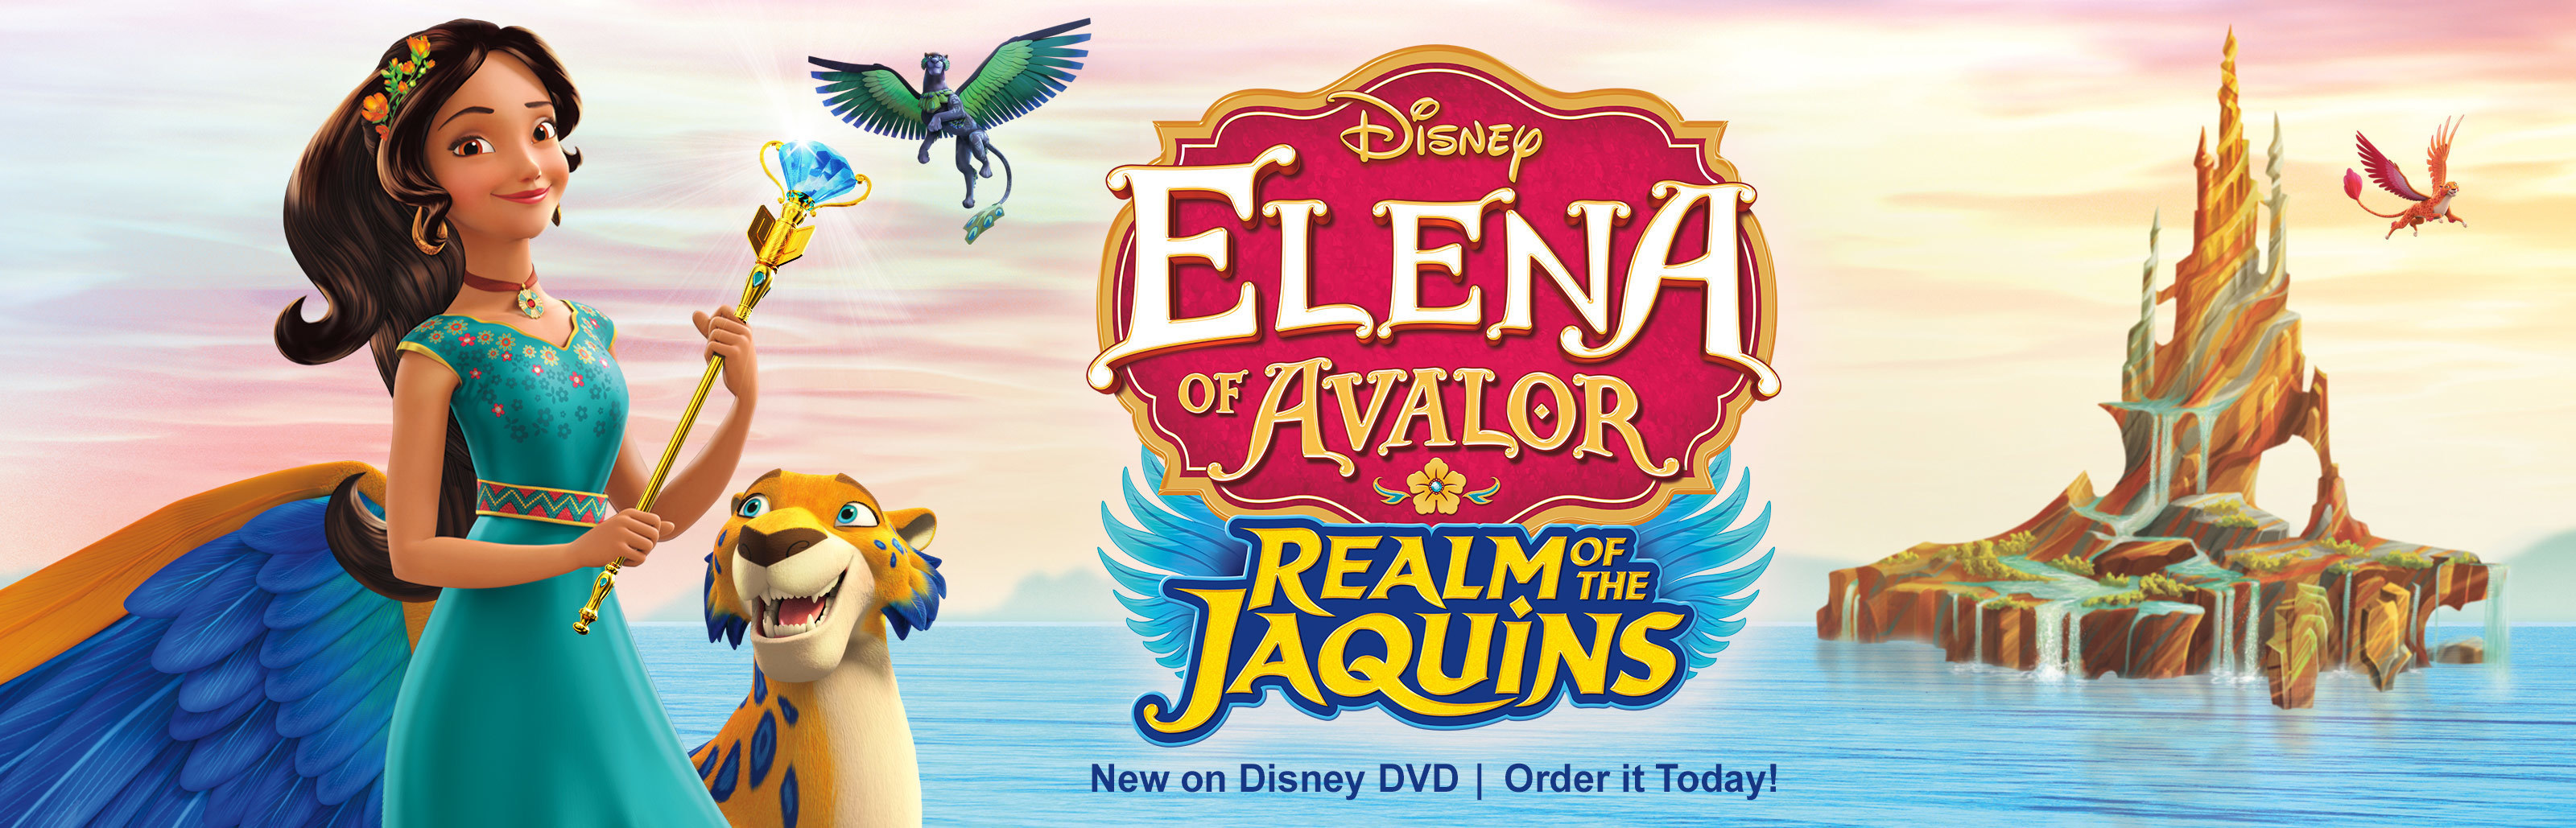 Elena of Avalor Realm of the Jaquins - New On Disney DVD | Order It Today!